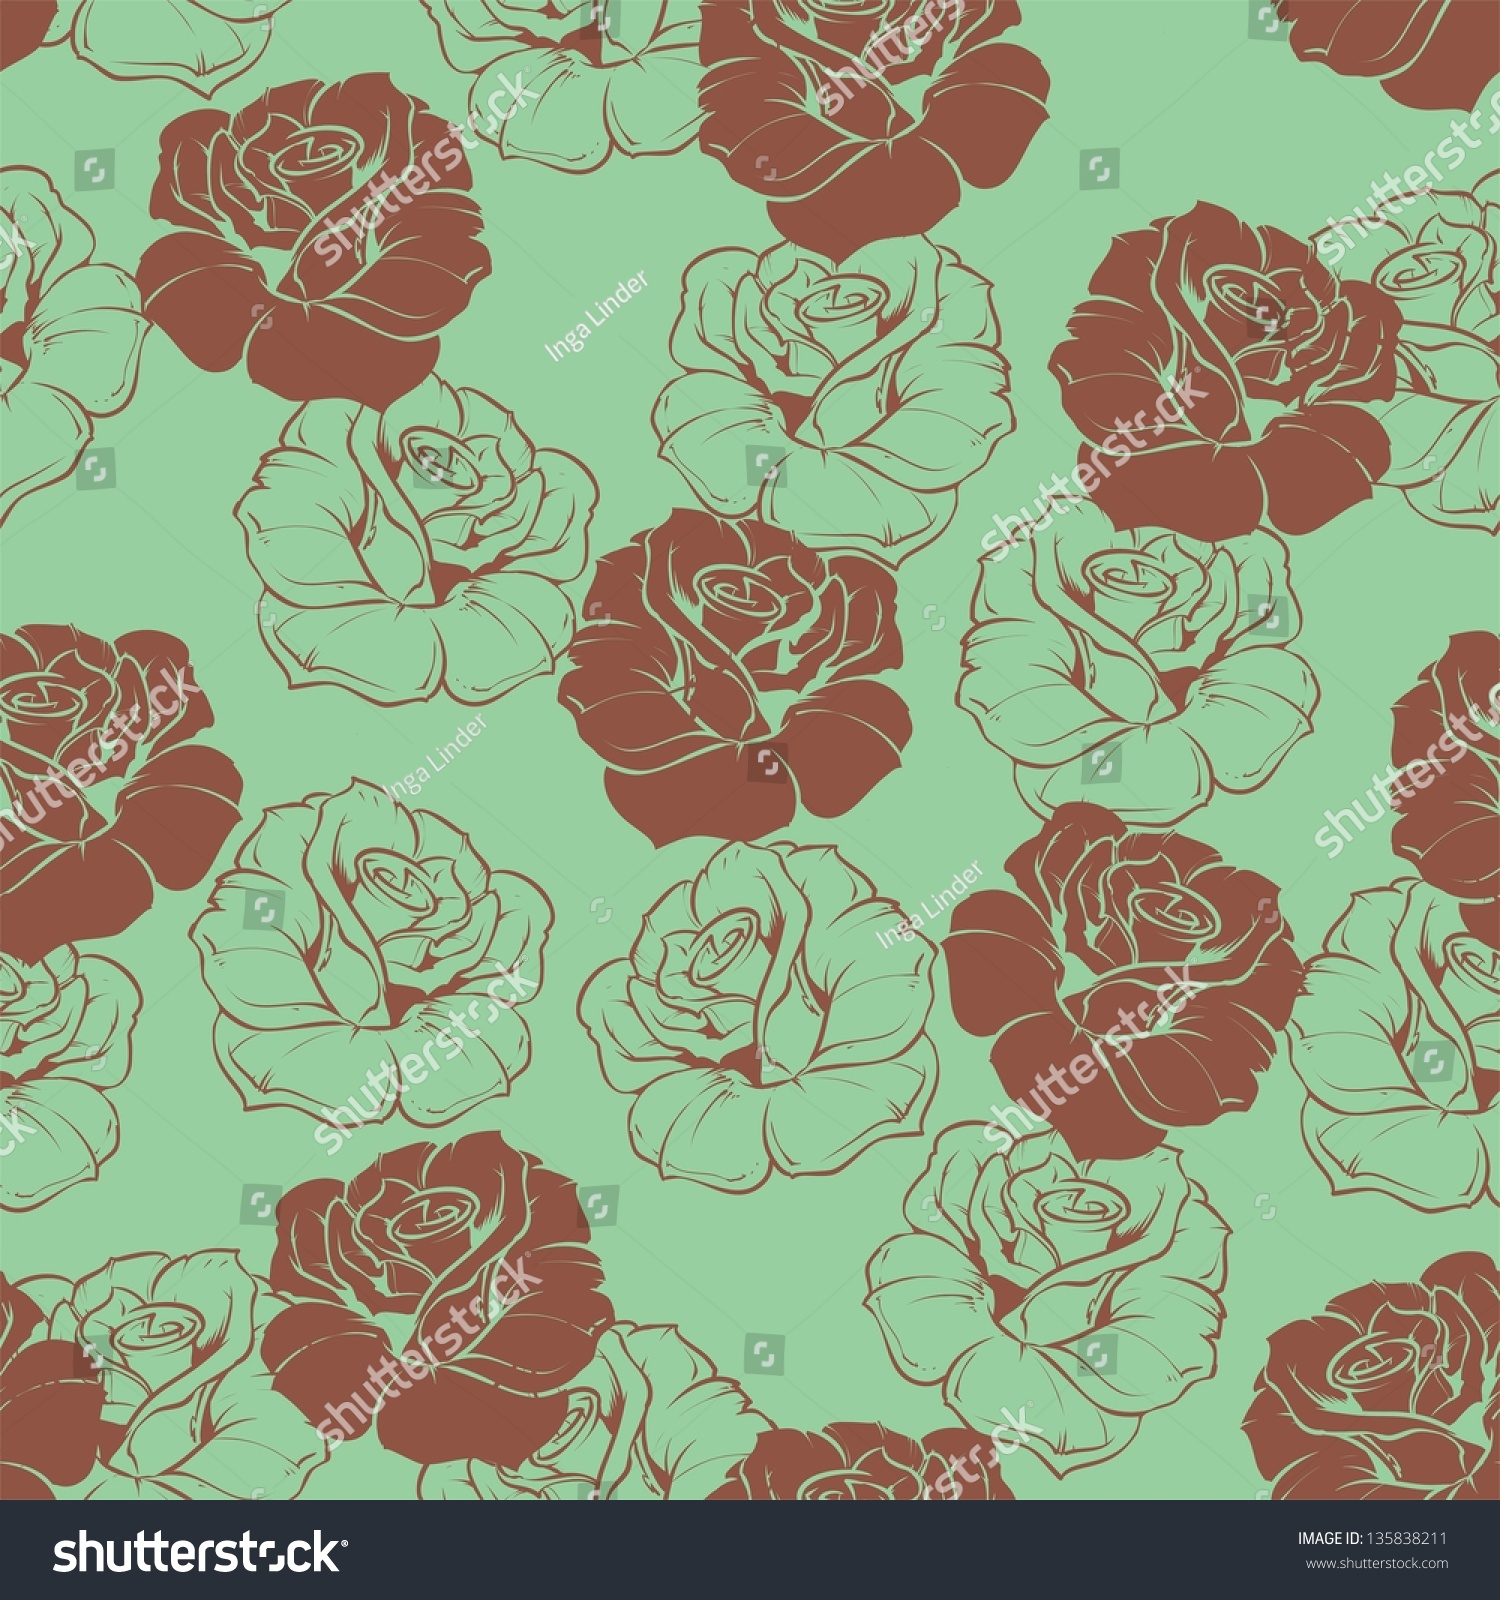 Seamless Floral Pattern Chocolate Brown Roses Stock Illustration